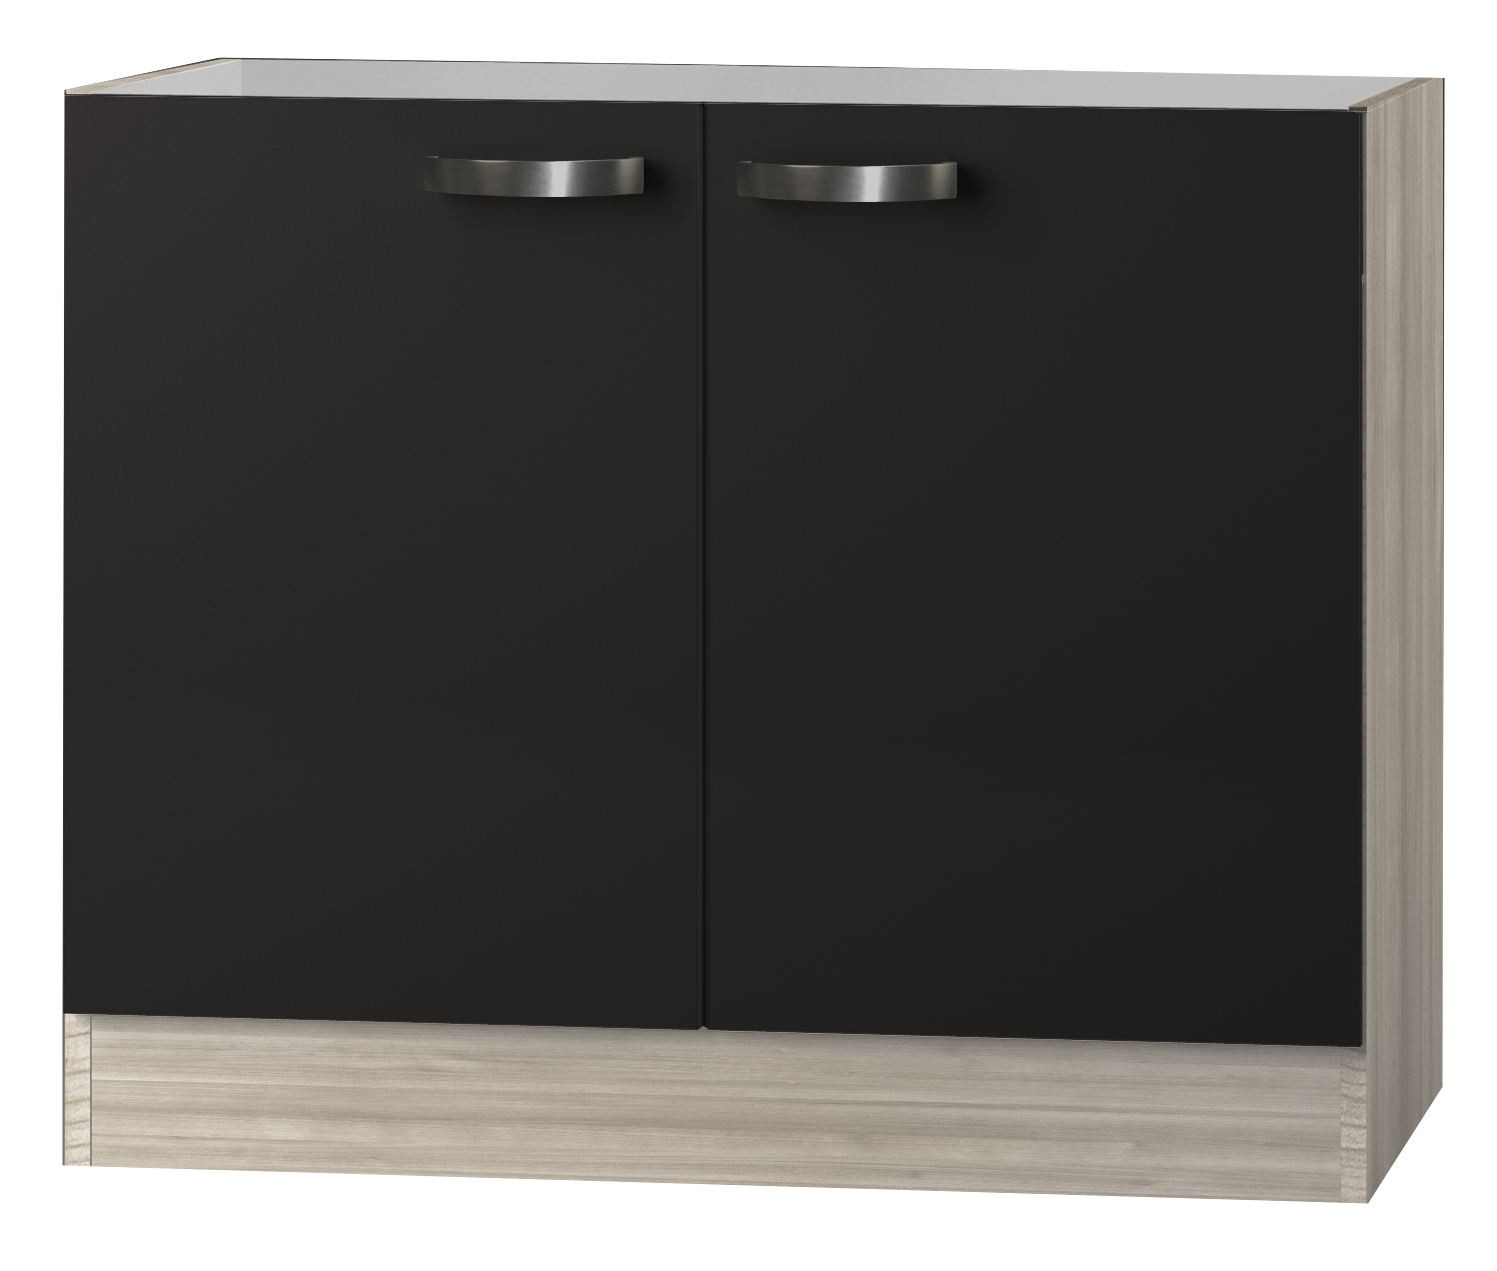 kult faro sp lenschrank 100cm breit anthrazit splo106 ebay. Black Bedroom Furniture Sets. Home Design Ideas